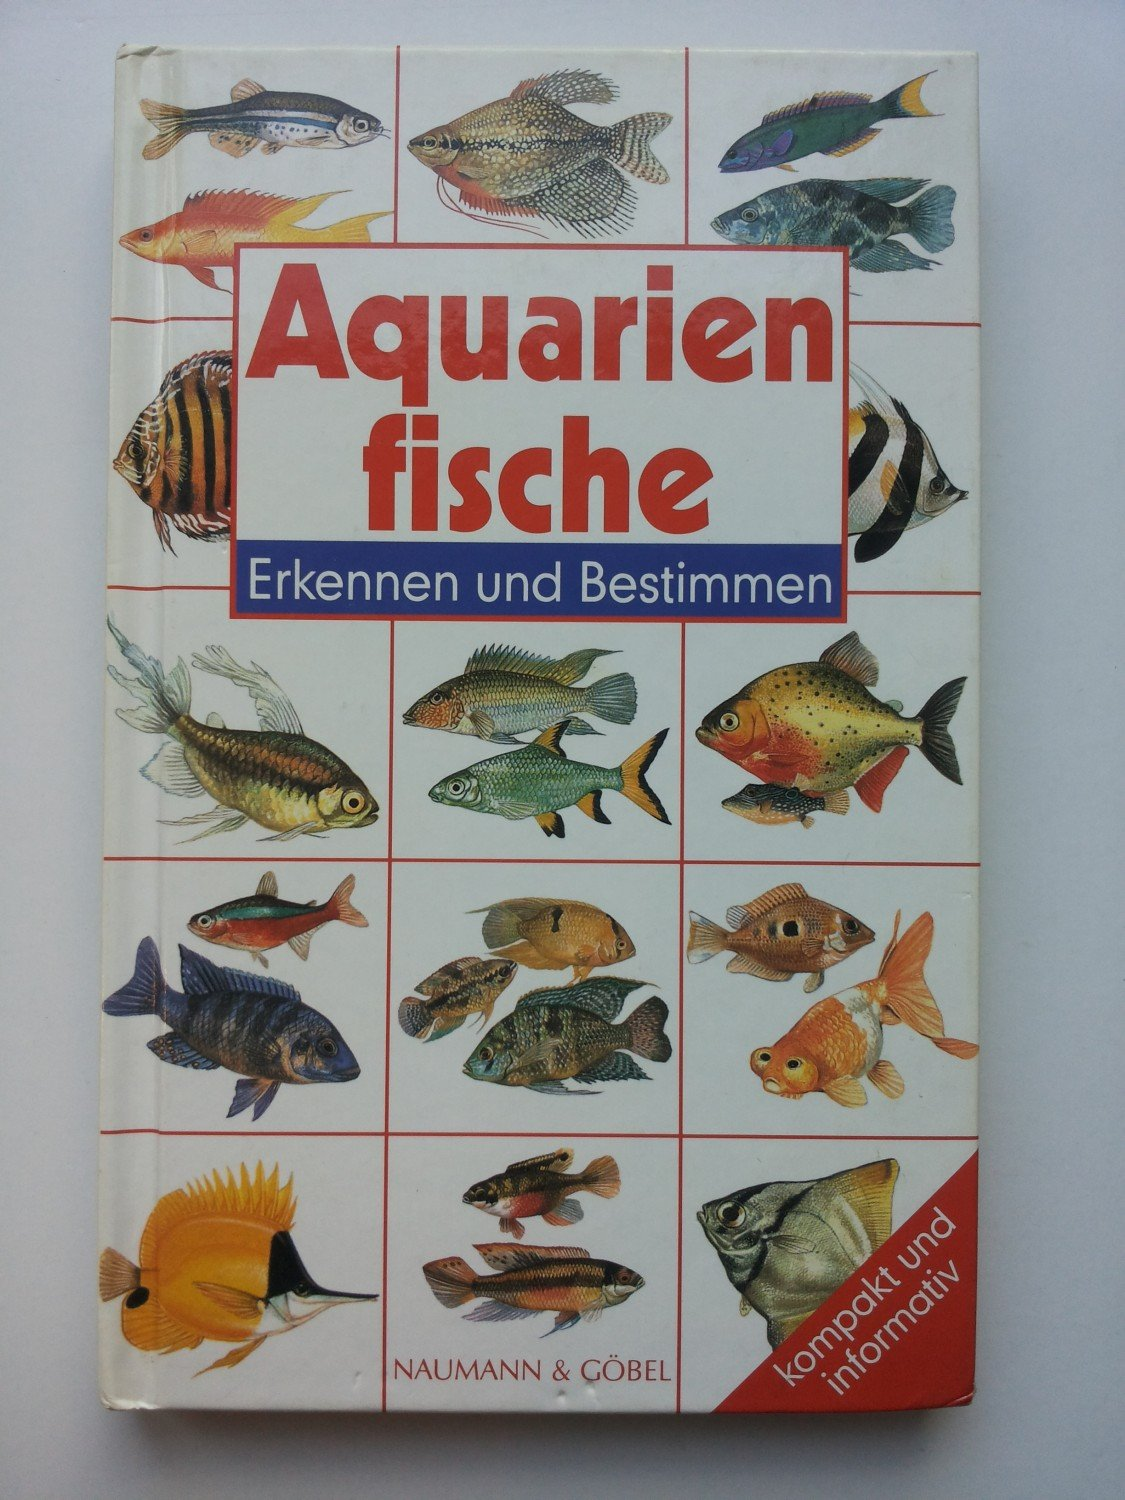 aquarienfische buch gebraucht kaufen a02cve7201zzz. Black Bedroom Furniture Sets. Home Design Ideas